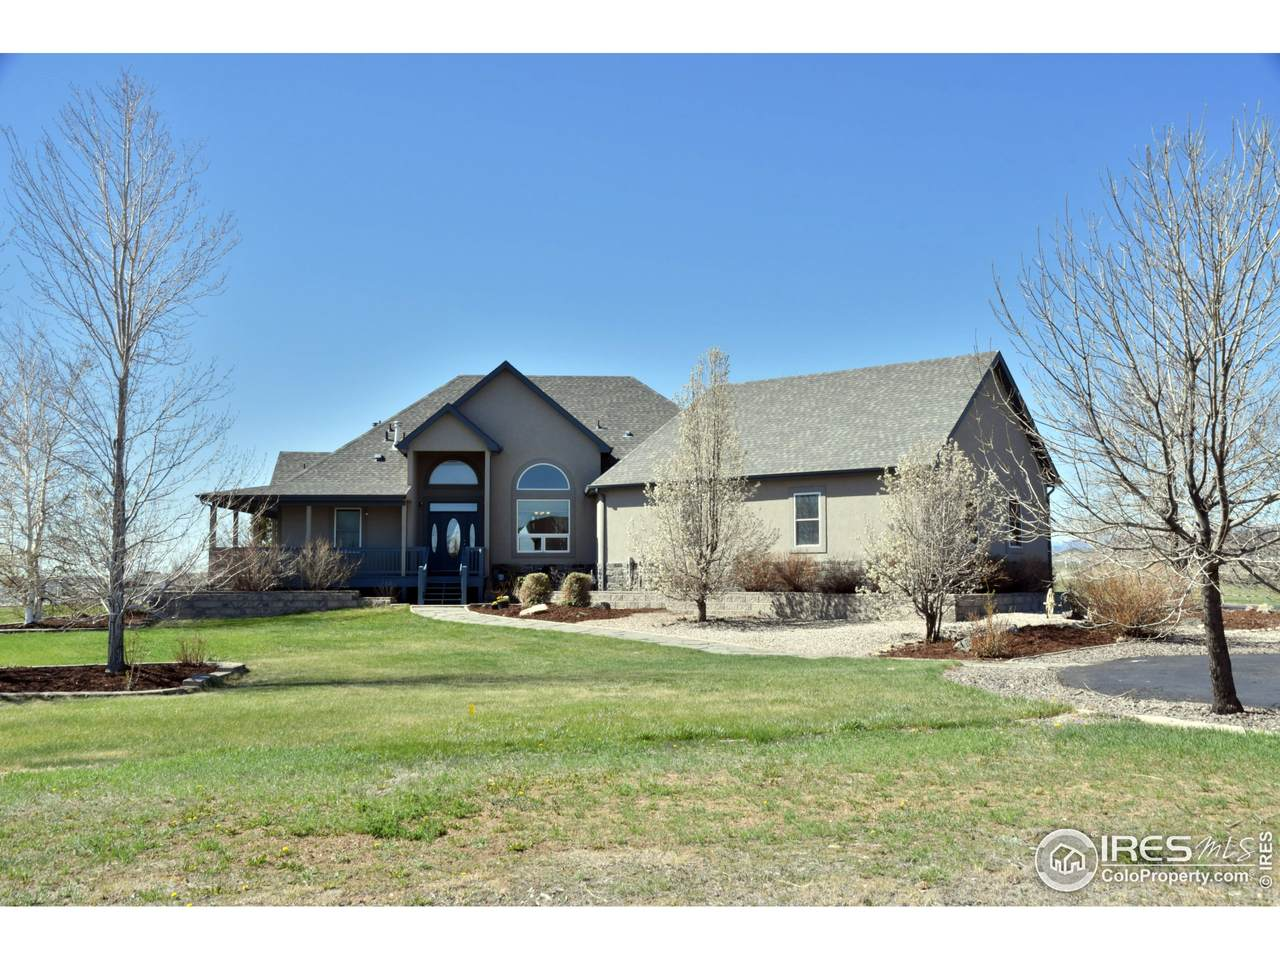 1116 Shelby Dr - Photo 1